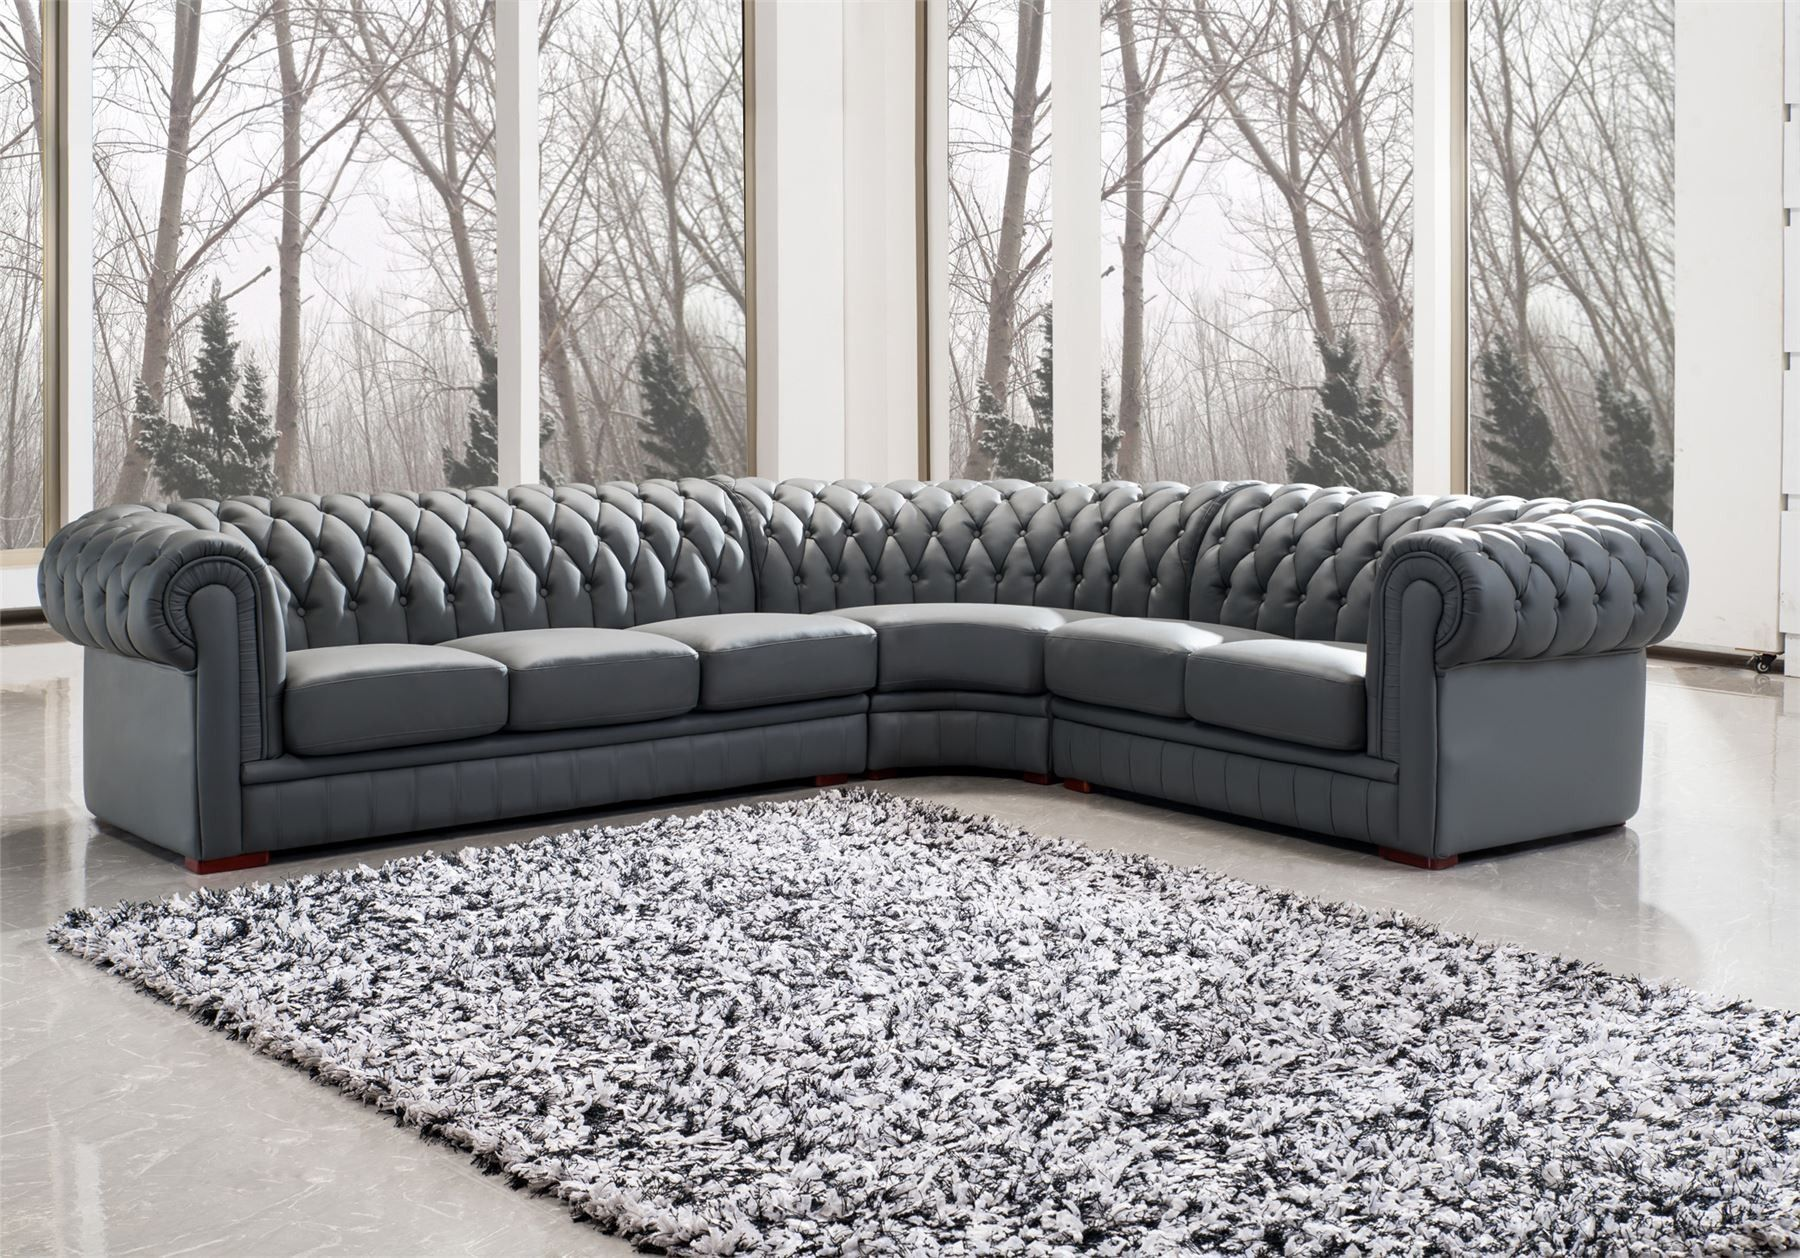 Chesterfield Sofa Living Room Ideas Appealing Grey Upholstered Sectional Leather Chesterfield